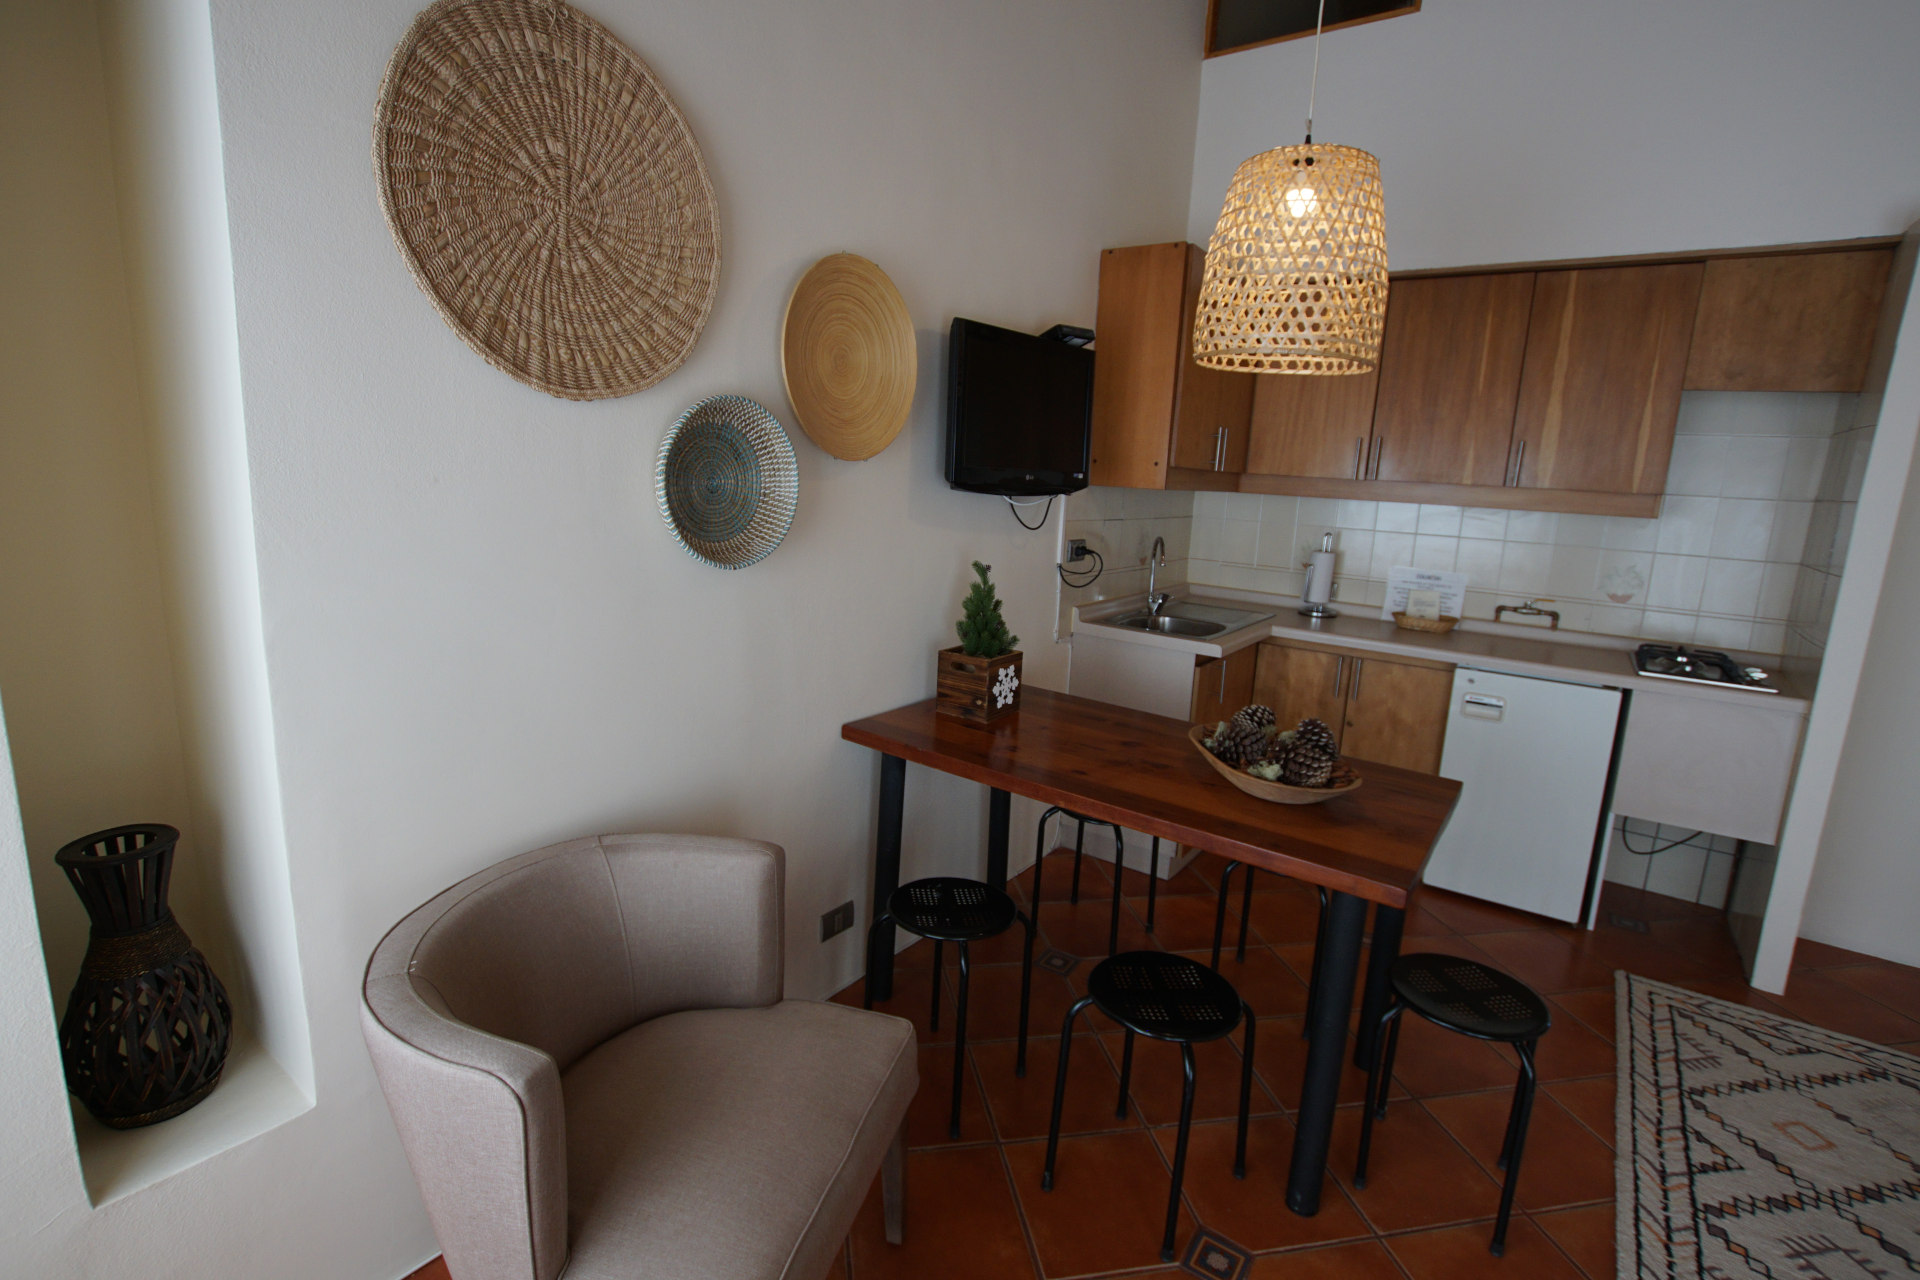 Kitchenette - Departamento Tipo B 224